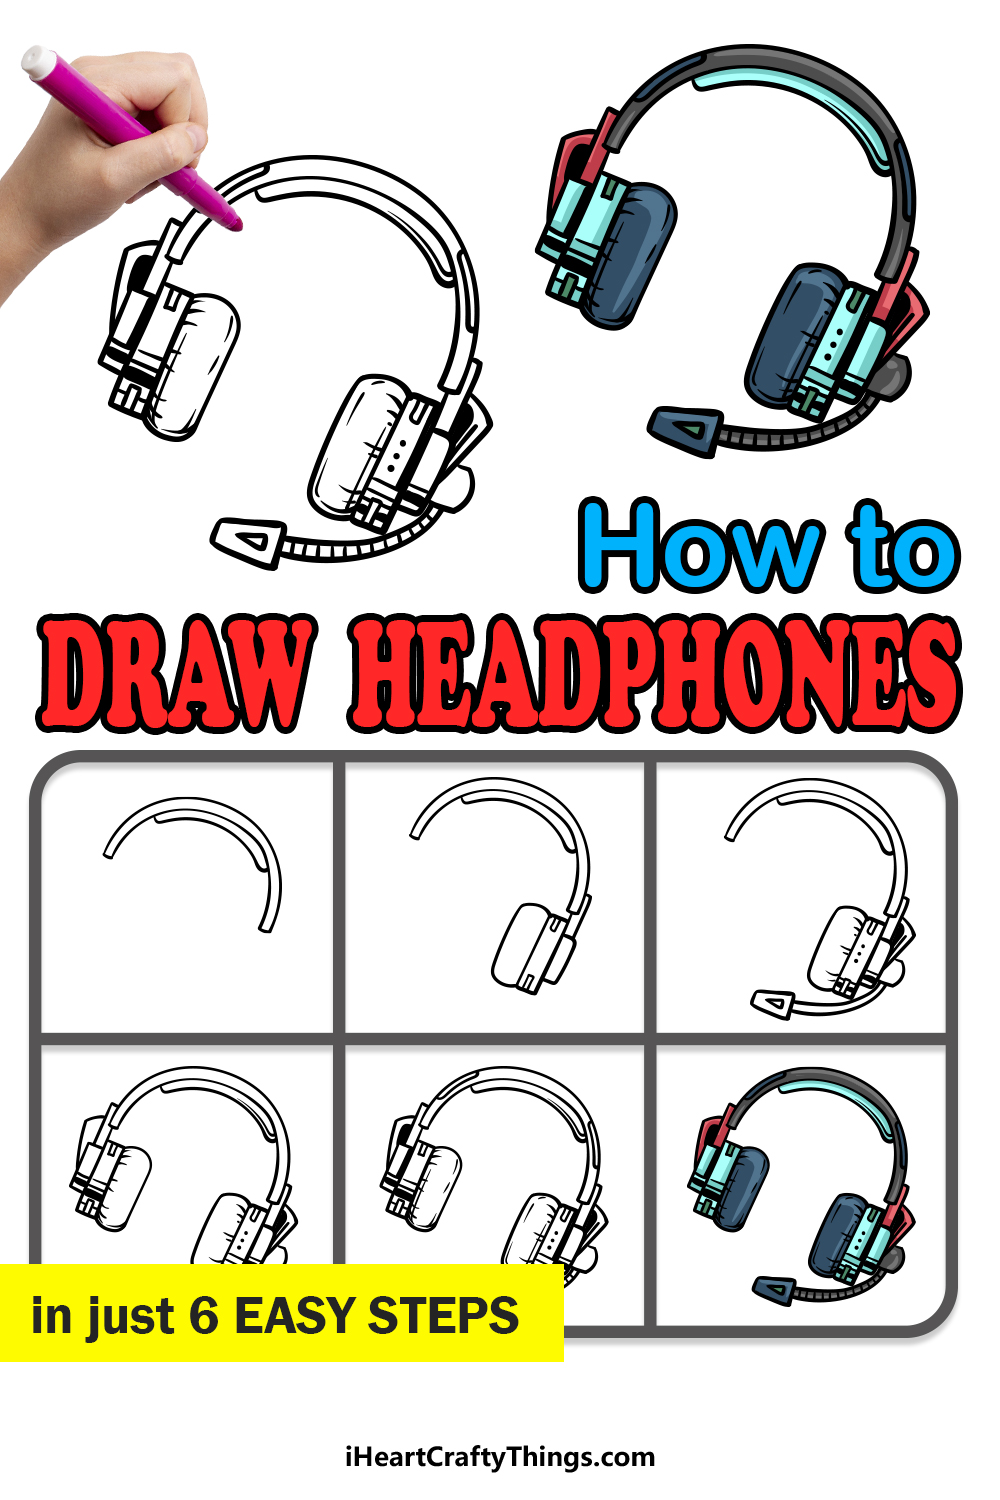 how to draw headphones in 6 easy steps